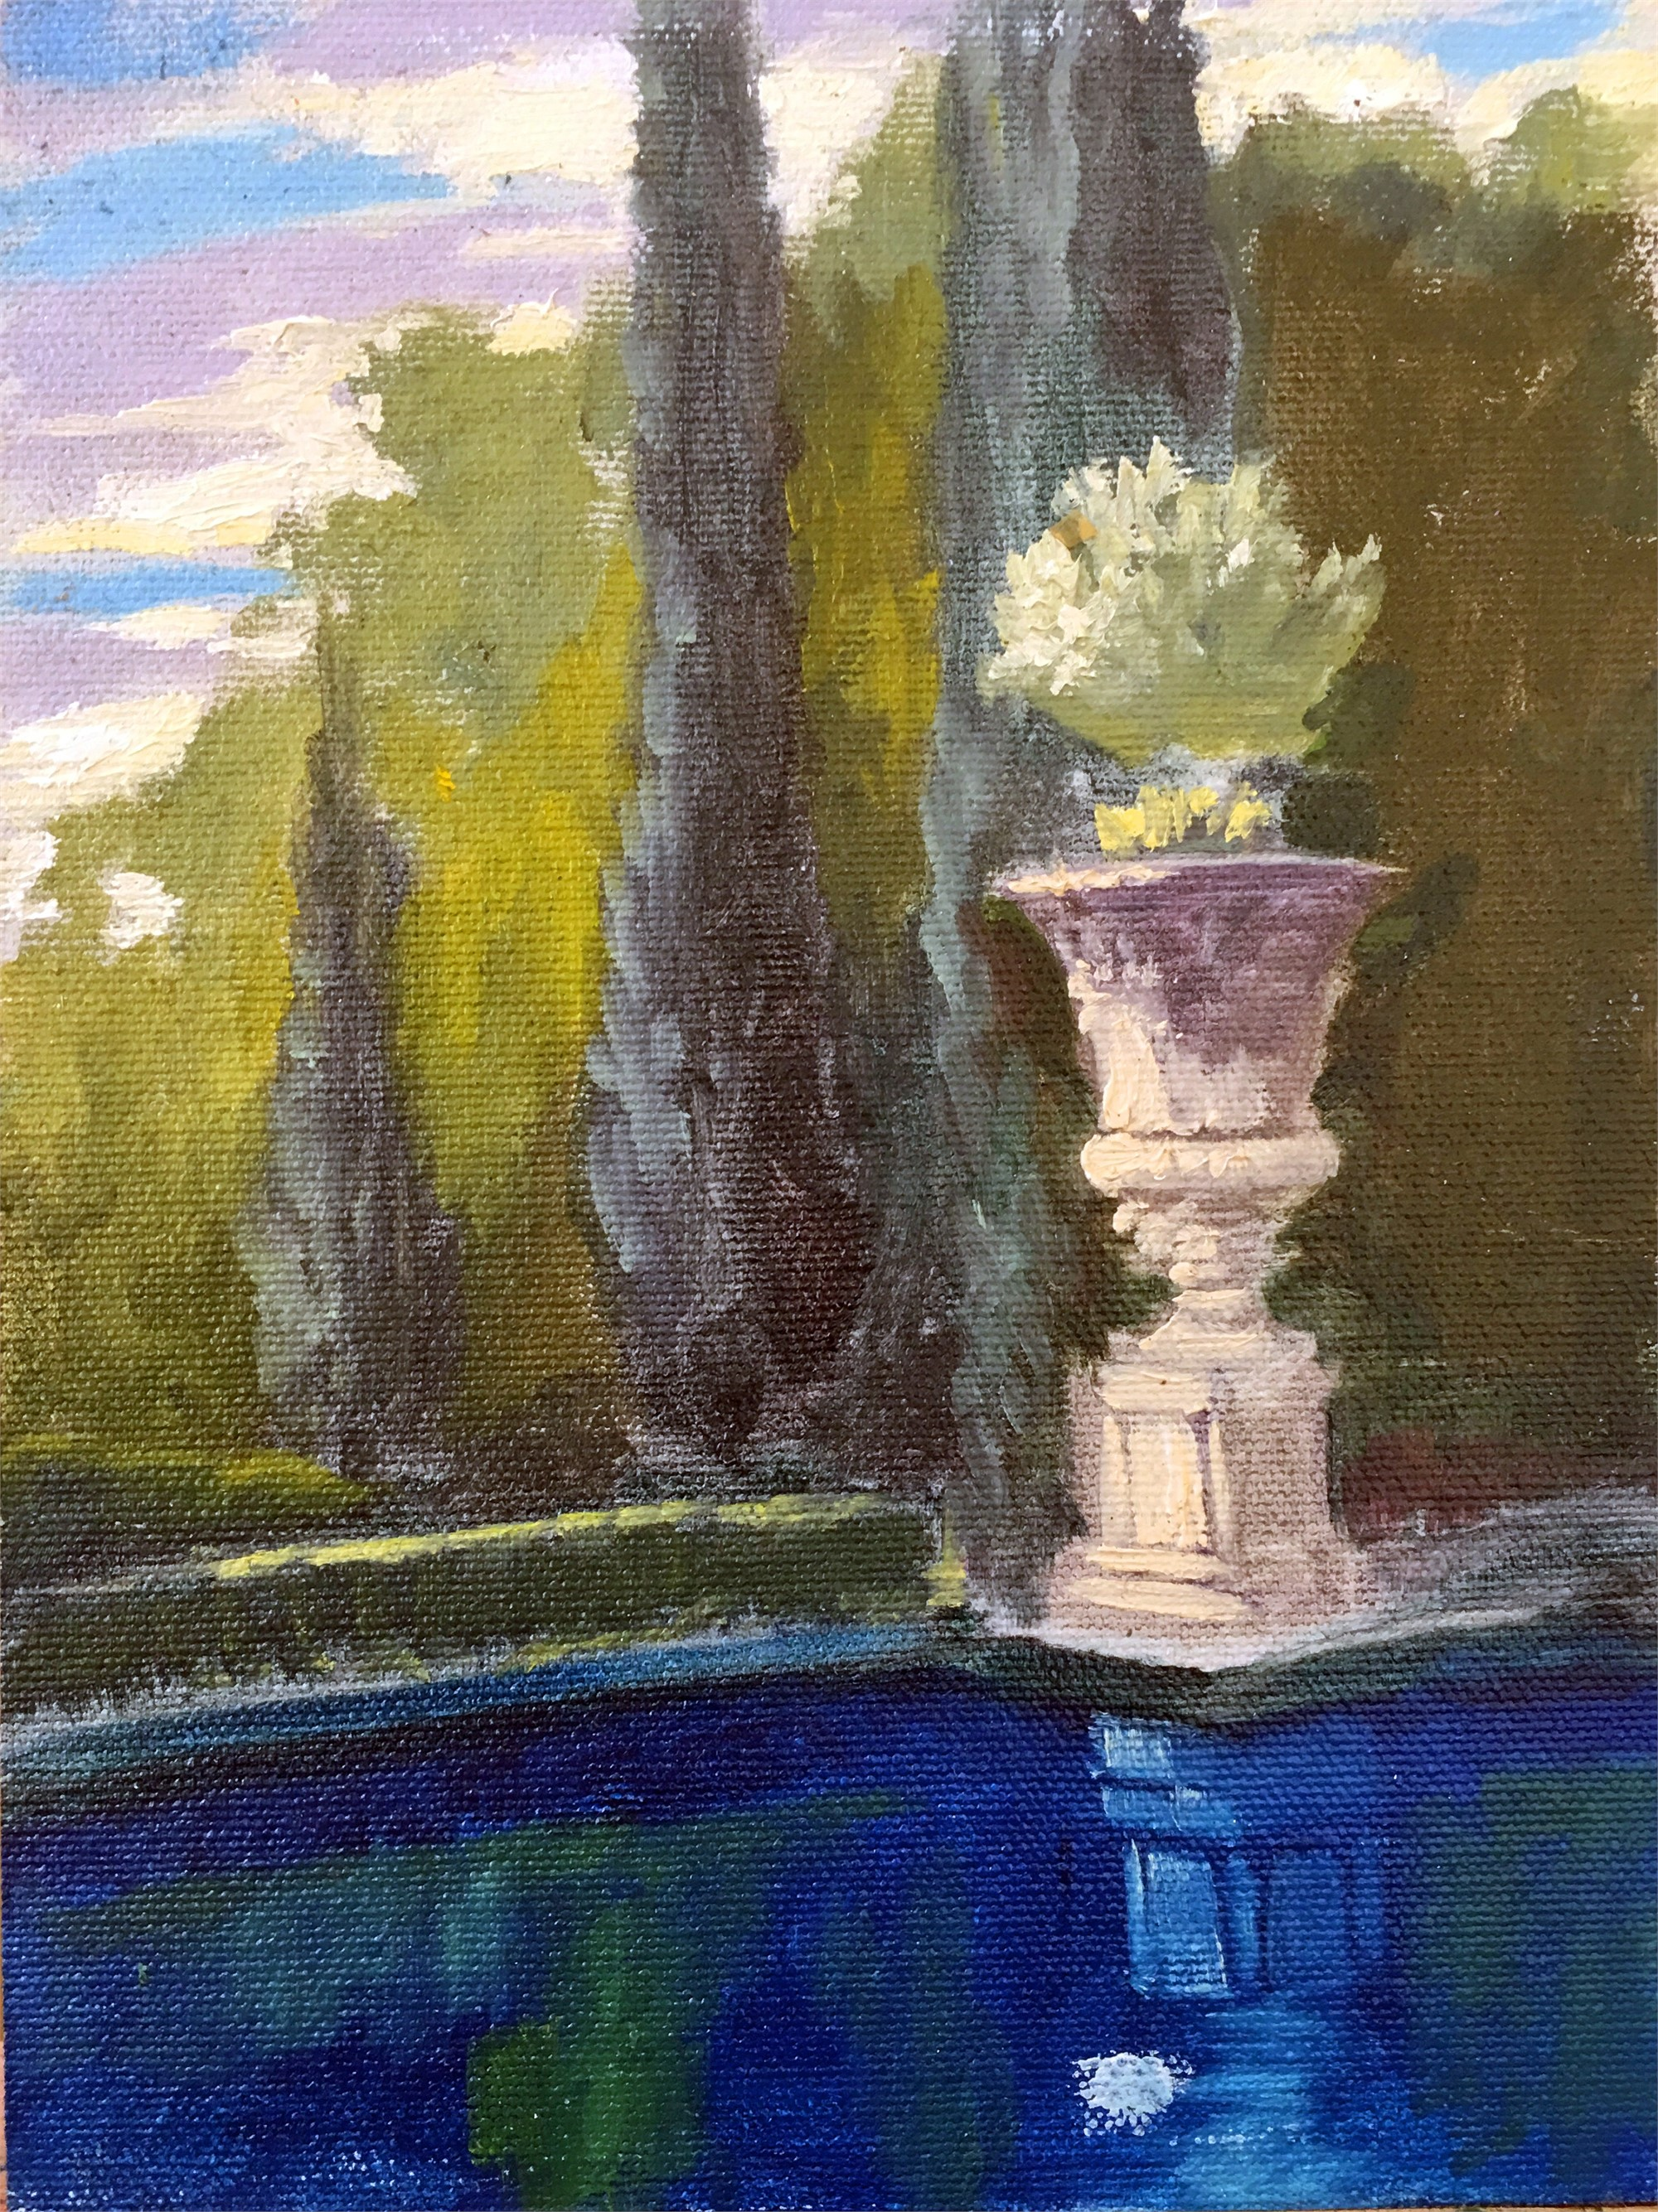 By the Pool, Provence, 2017 by Nancy Paris Pruden